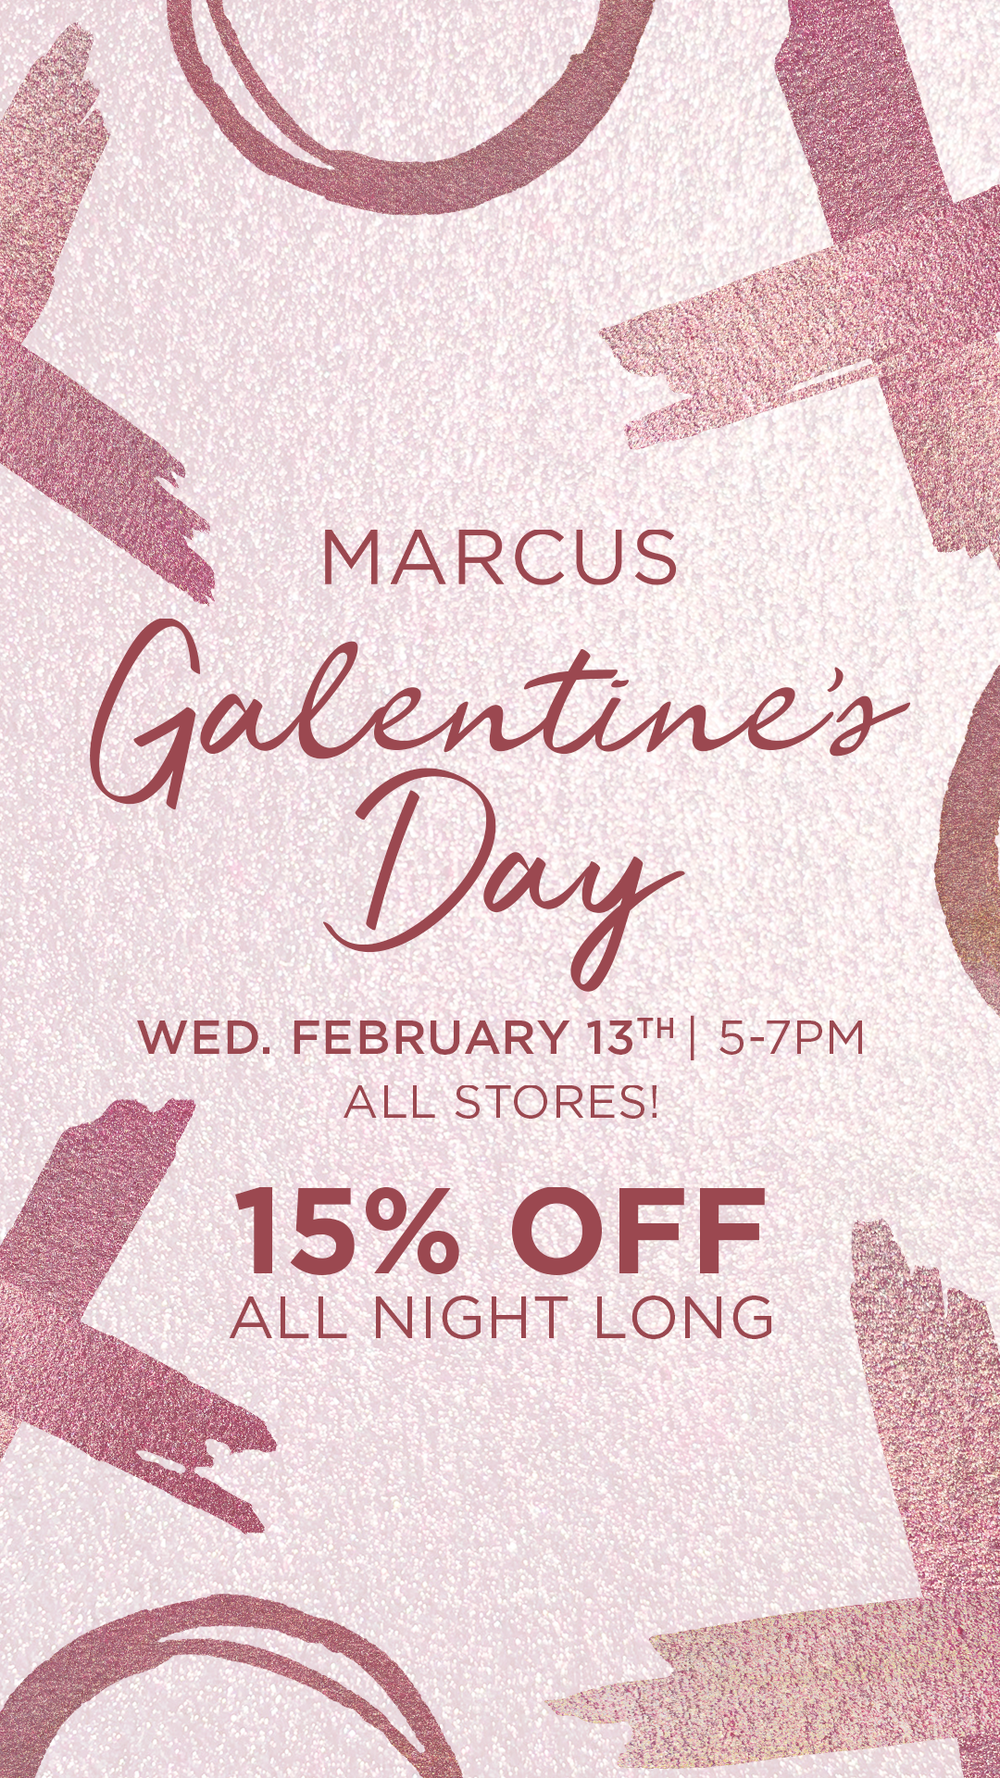 Marcus_Social-Story_Galentines-Day.png